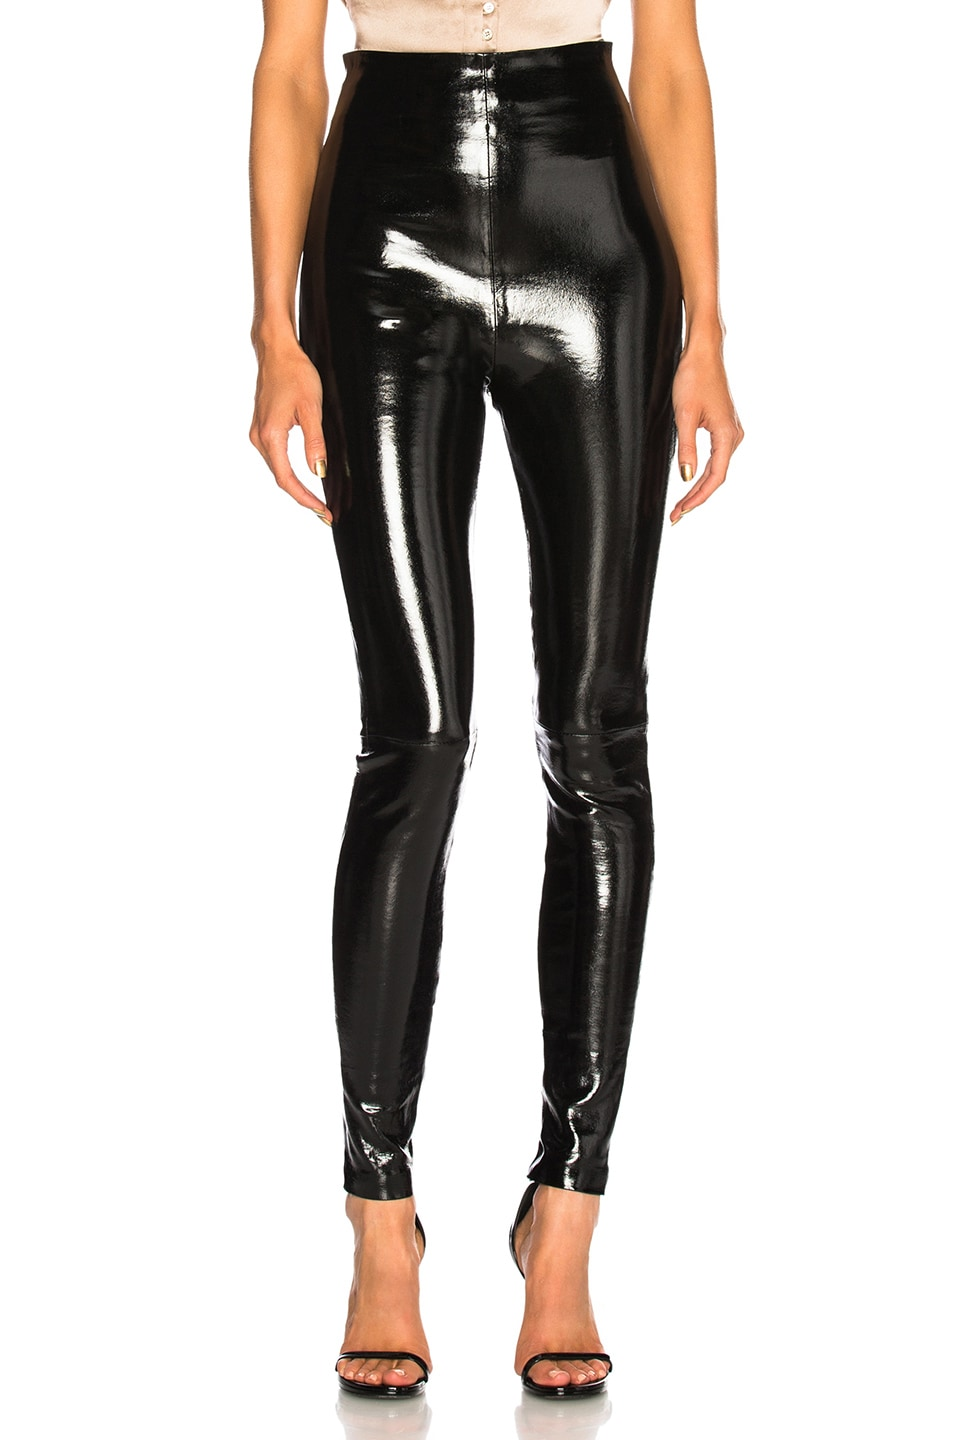 Image 1 of SABLYN Jessica Patent High Waisted Leggings in Black